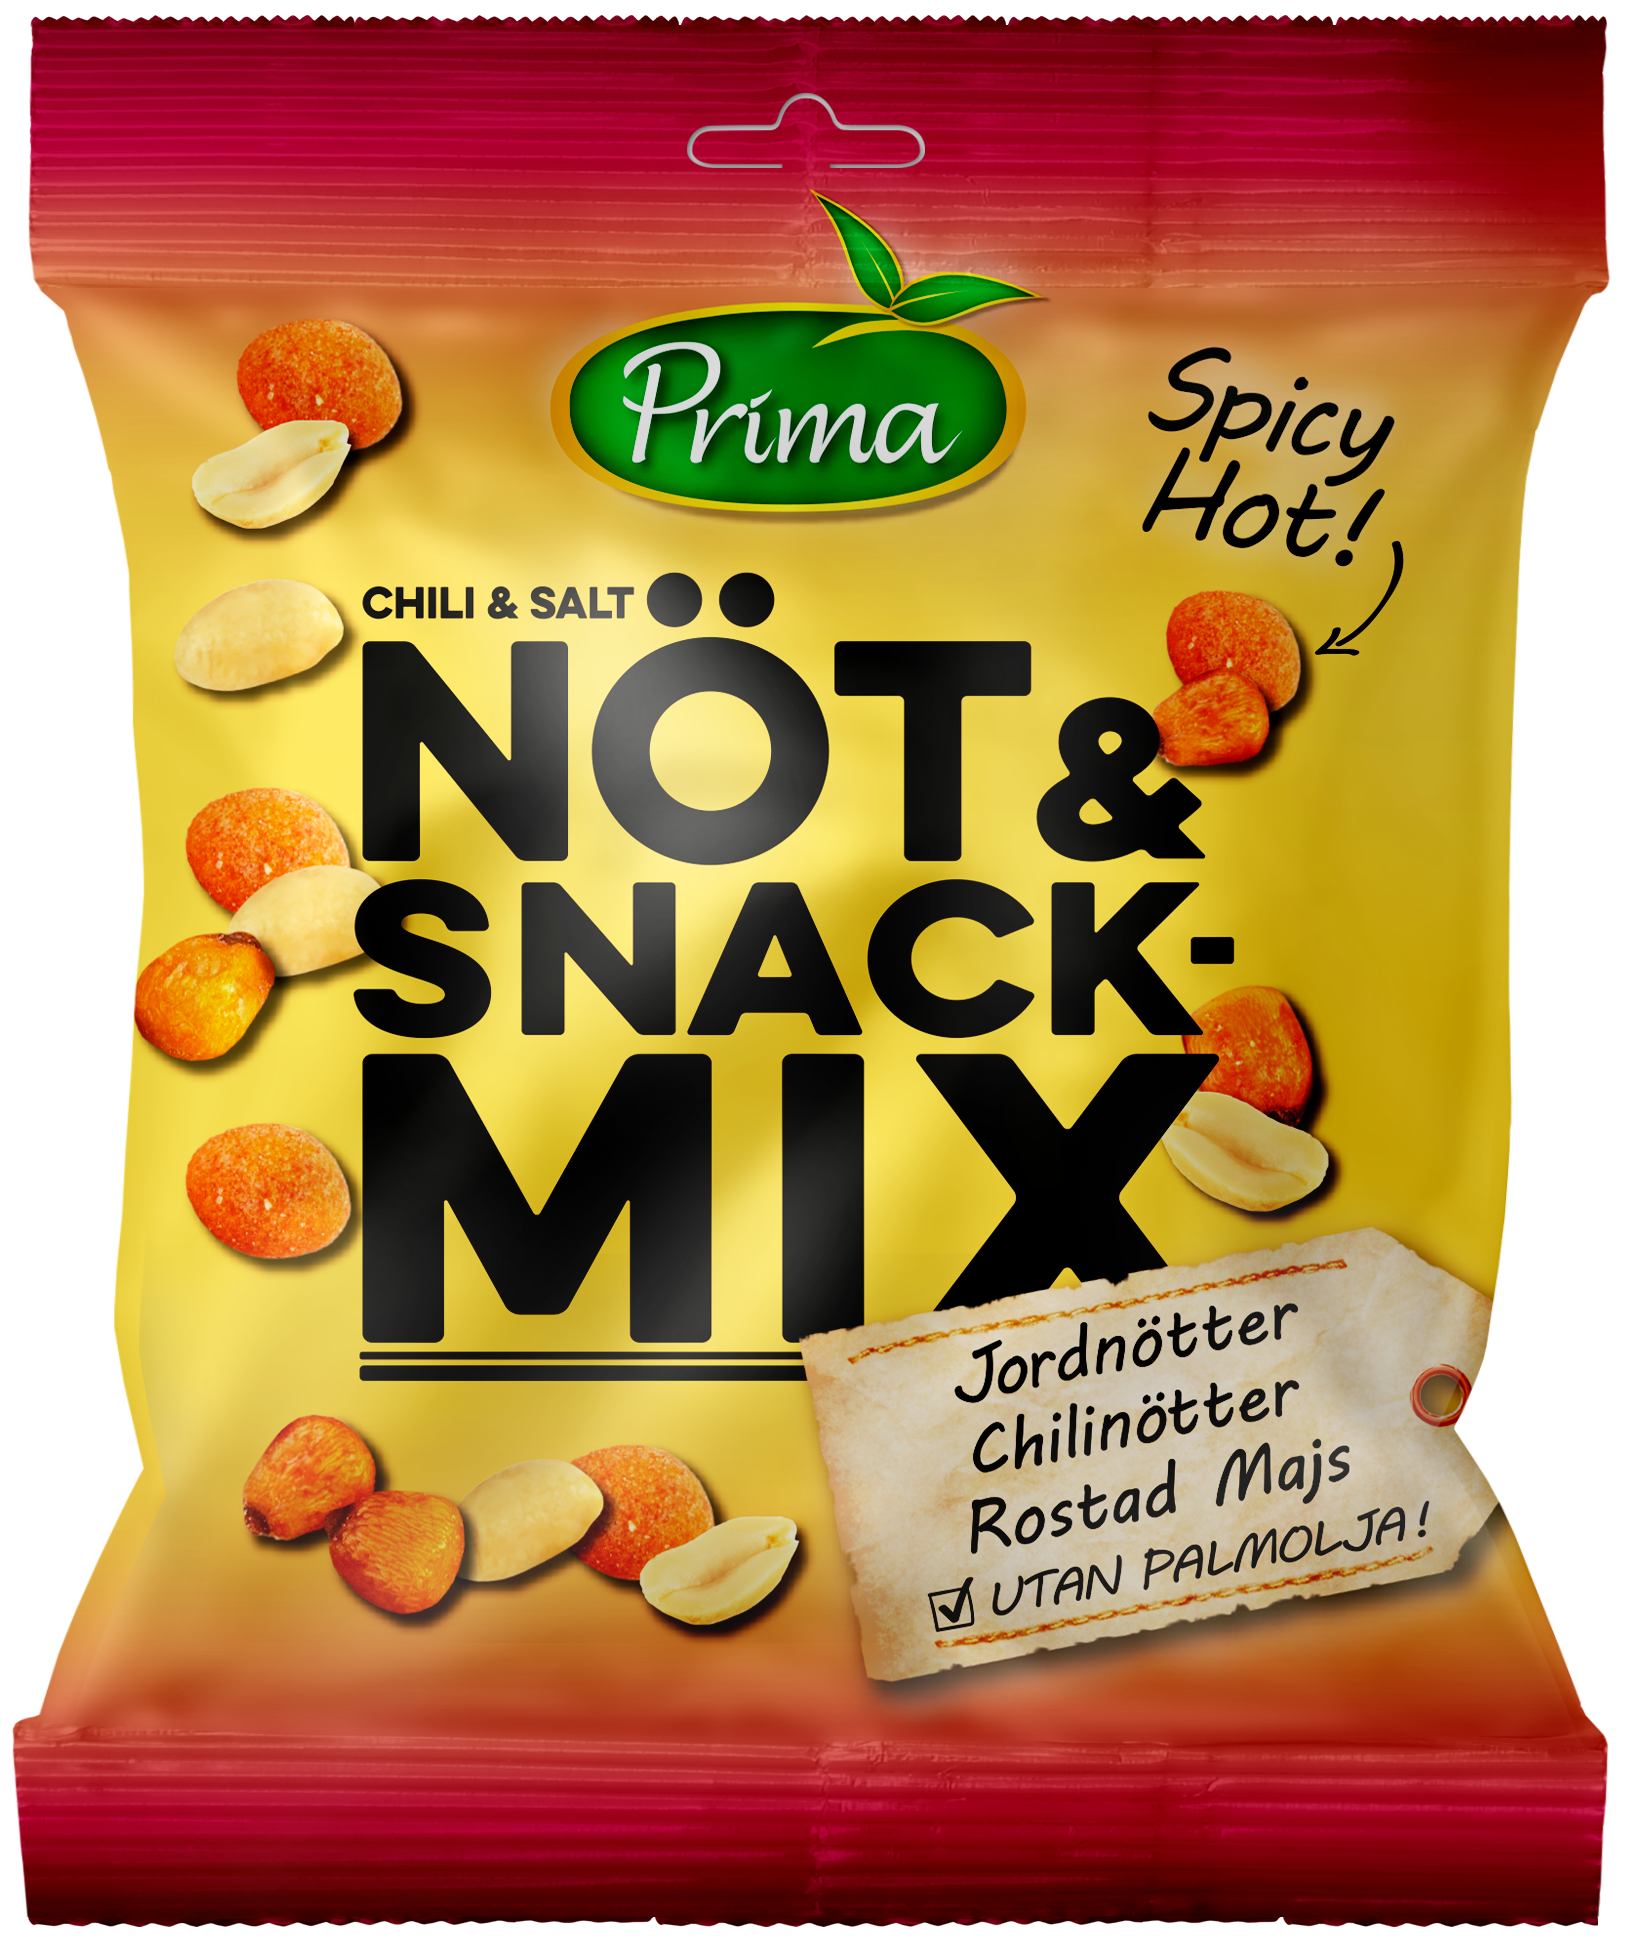 NUTS & SNACKMIX - A salty mix with peanuts, chilinuts and roasted corn with chili. The bag contain 150g.Ingredients: Dry roasted PEANUTS 37%, Roasted corn 30% (corn 84%, sunflower oil, salt, spices (onion, garlic, pepper, cayenne, pepper, tomato), maltodextrin, flavor enhancer E621, sunflower oil), Chili nuts 30% (PEANUTS 40%, WHEAT flour, sunflower oil, corn starch, sugar, spices, salt, coloring (paprika), glucose syrup), sunflower oil, salt.Nutritional value per 100g Energy 495.7 kcal / 2072 kJ Fat 26.6g, of which saturated fat 4.2g Carbohydrates 47.4g, of which sugars 6.8gProtein 15.8gFiber 7gSalt 1.4g